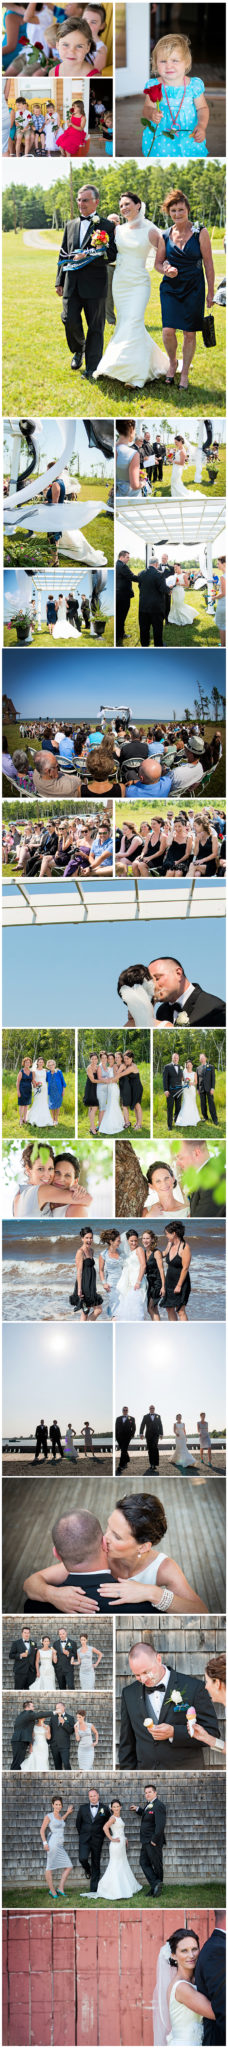 pictou_lodge_outdoor_wedding